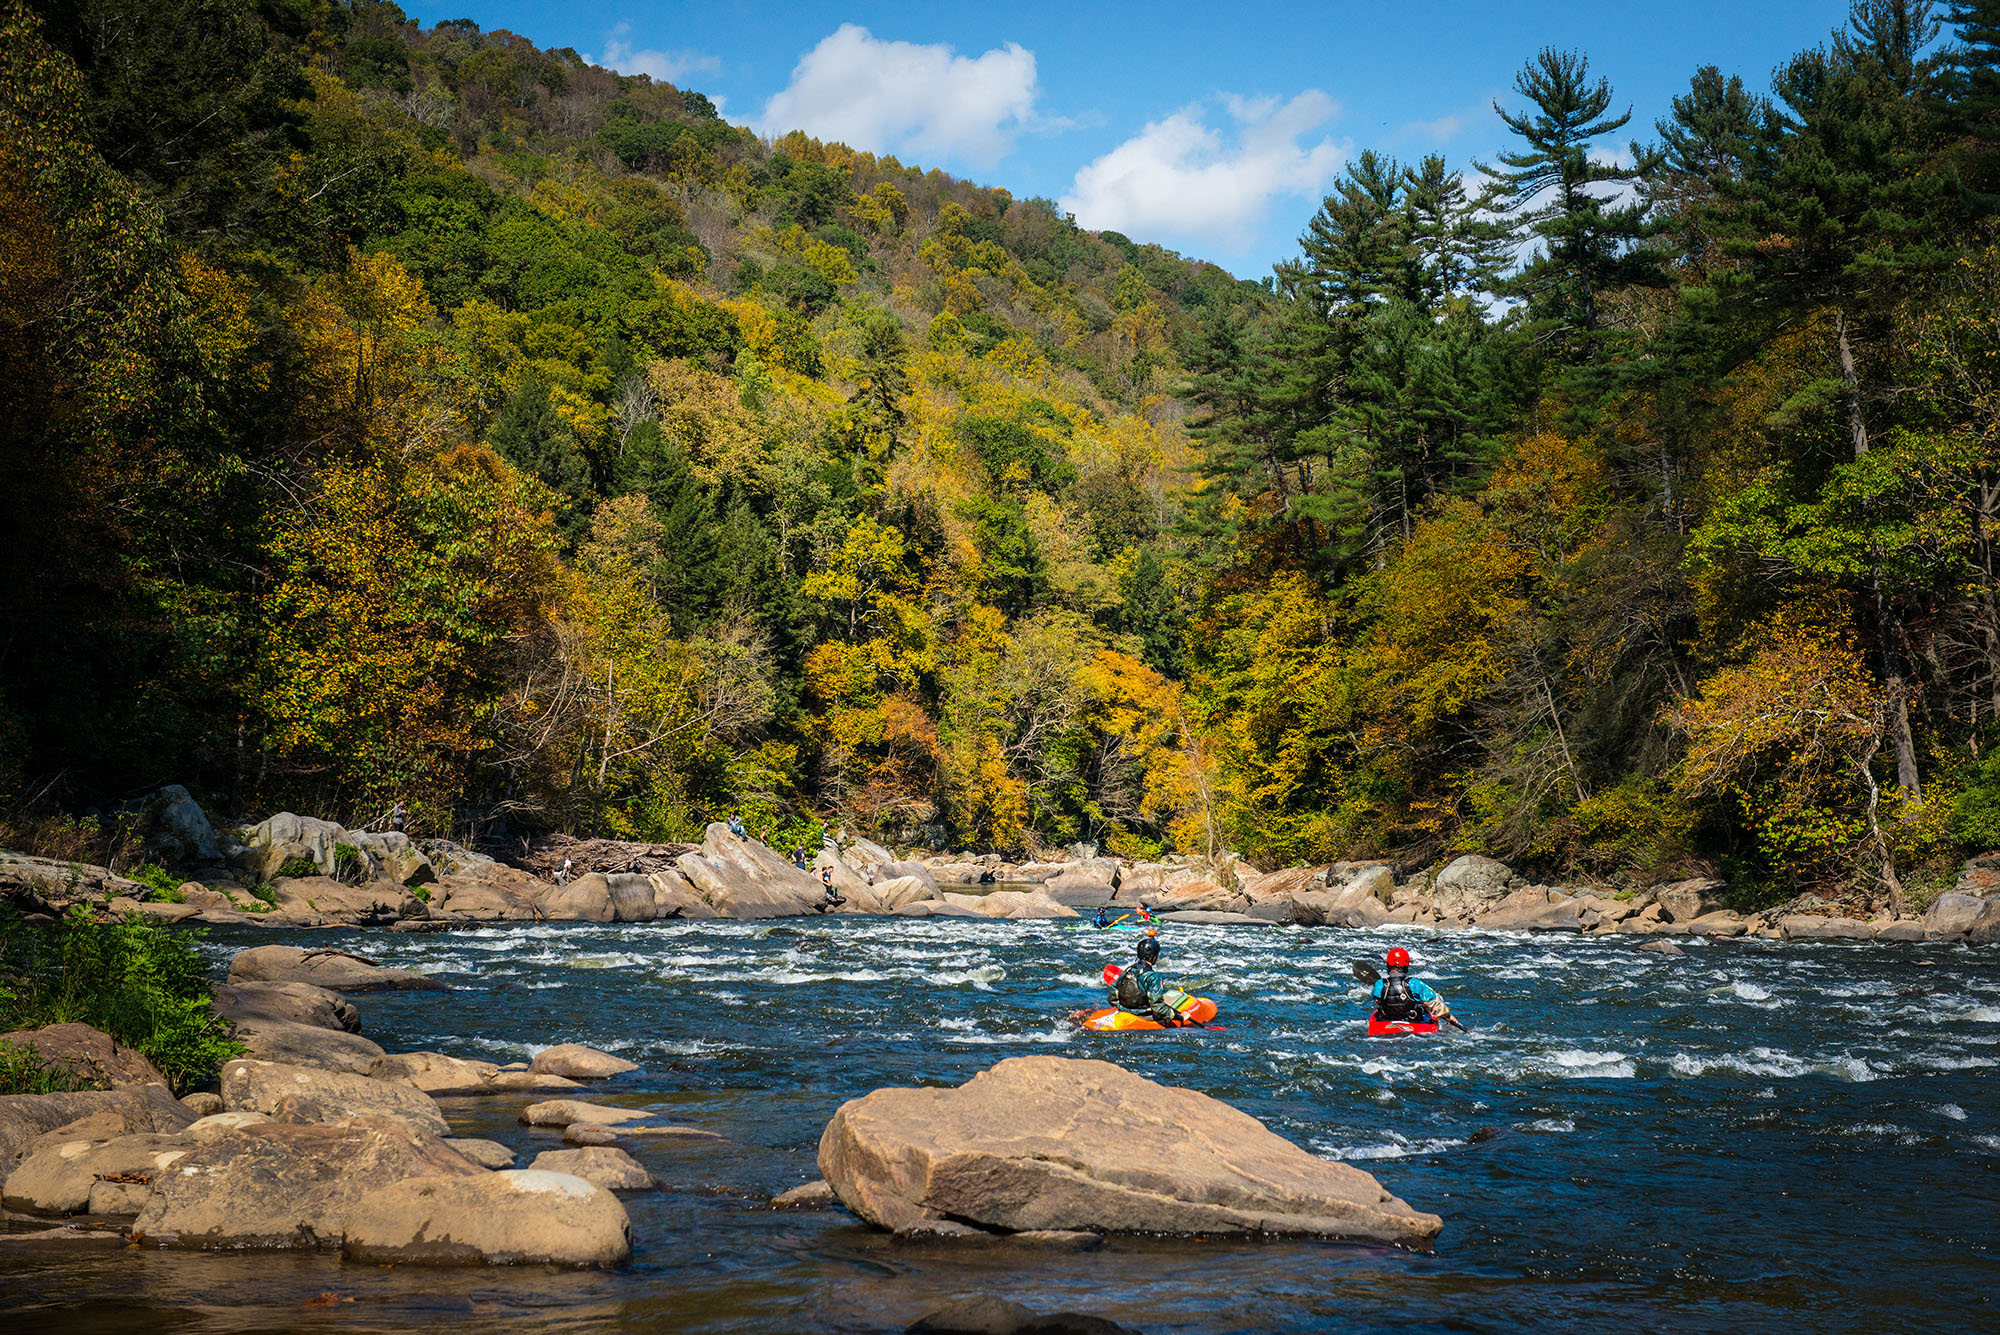 #kayak, #foliage, #youghiogheny, #laurelhighlands, #ohiopyle, #recreation, #october, #pittsburgh, #pennsylvania